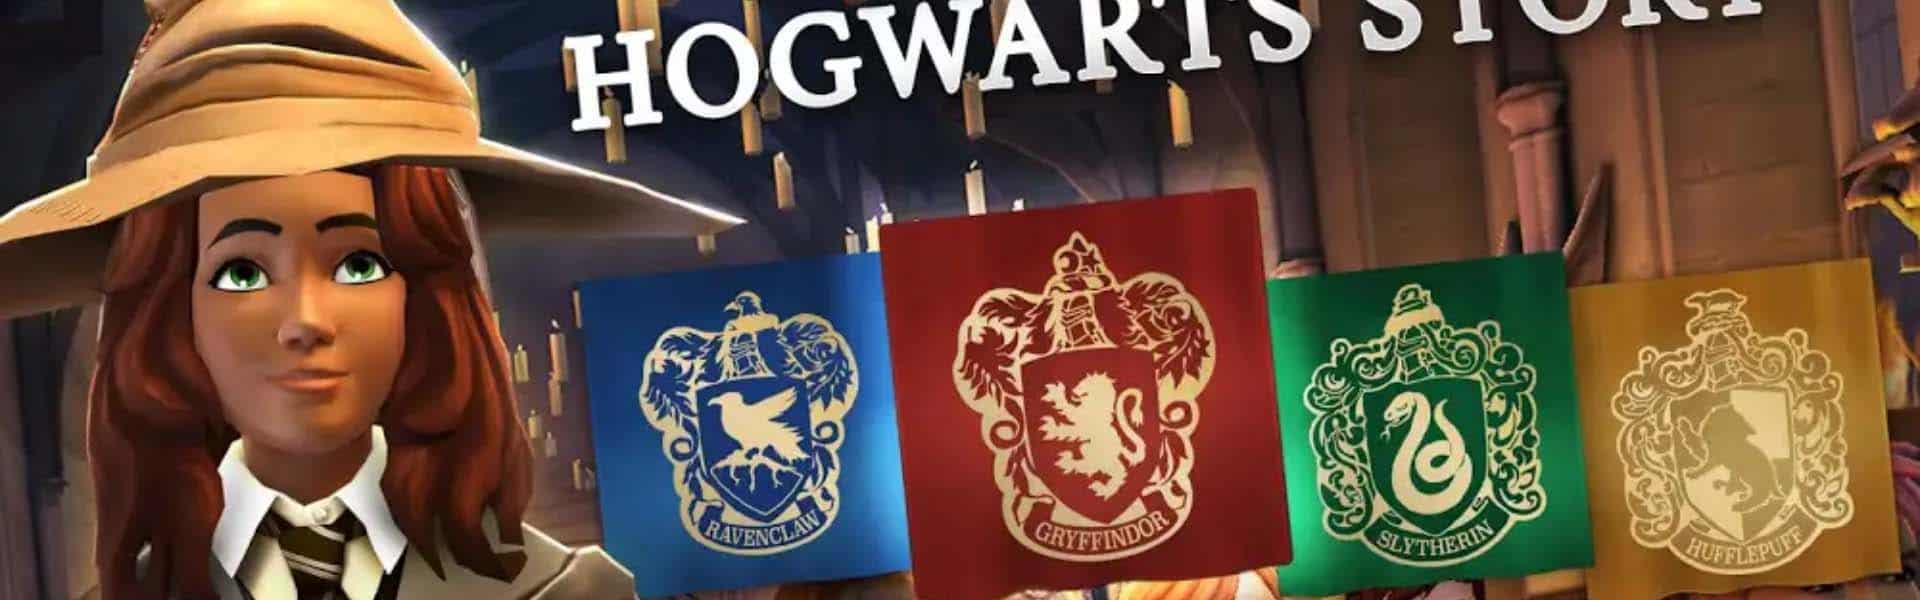 Harry Potter: Hogwarts Mystery Review – Everything That's Wrong With Mobile Gaming Today